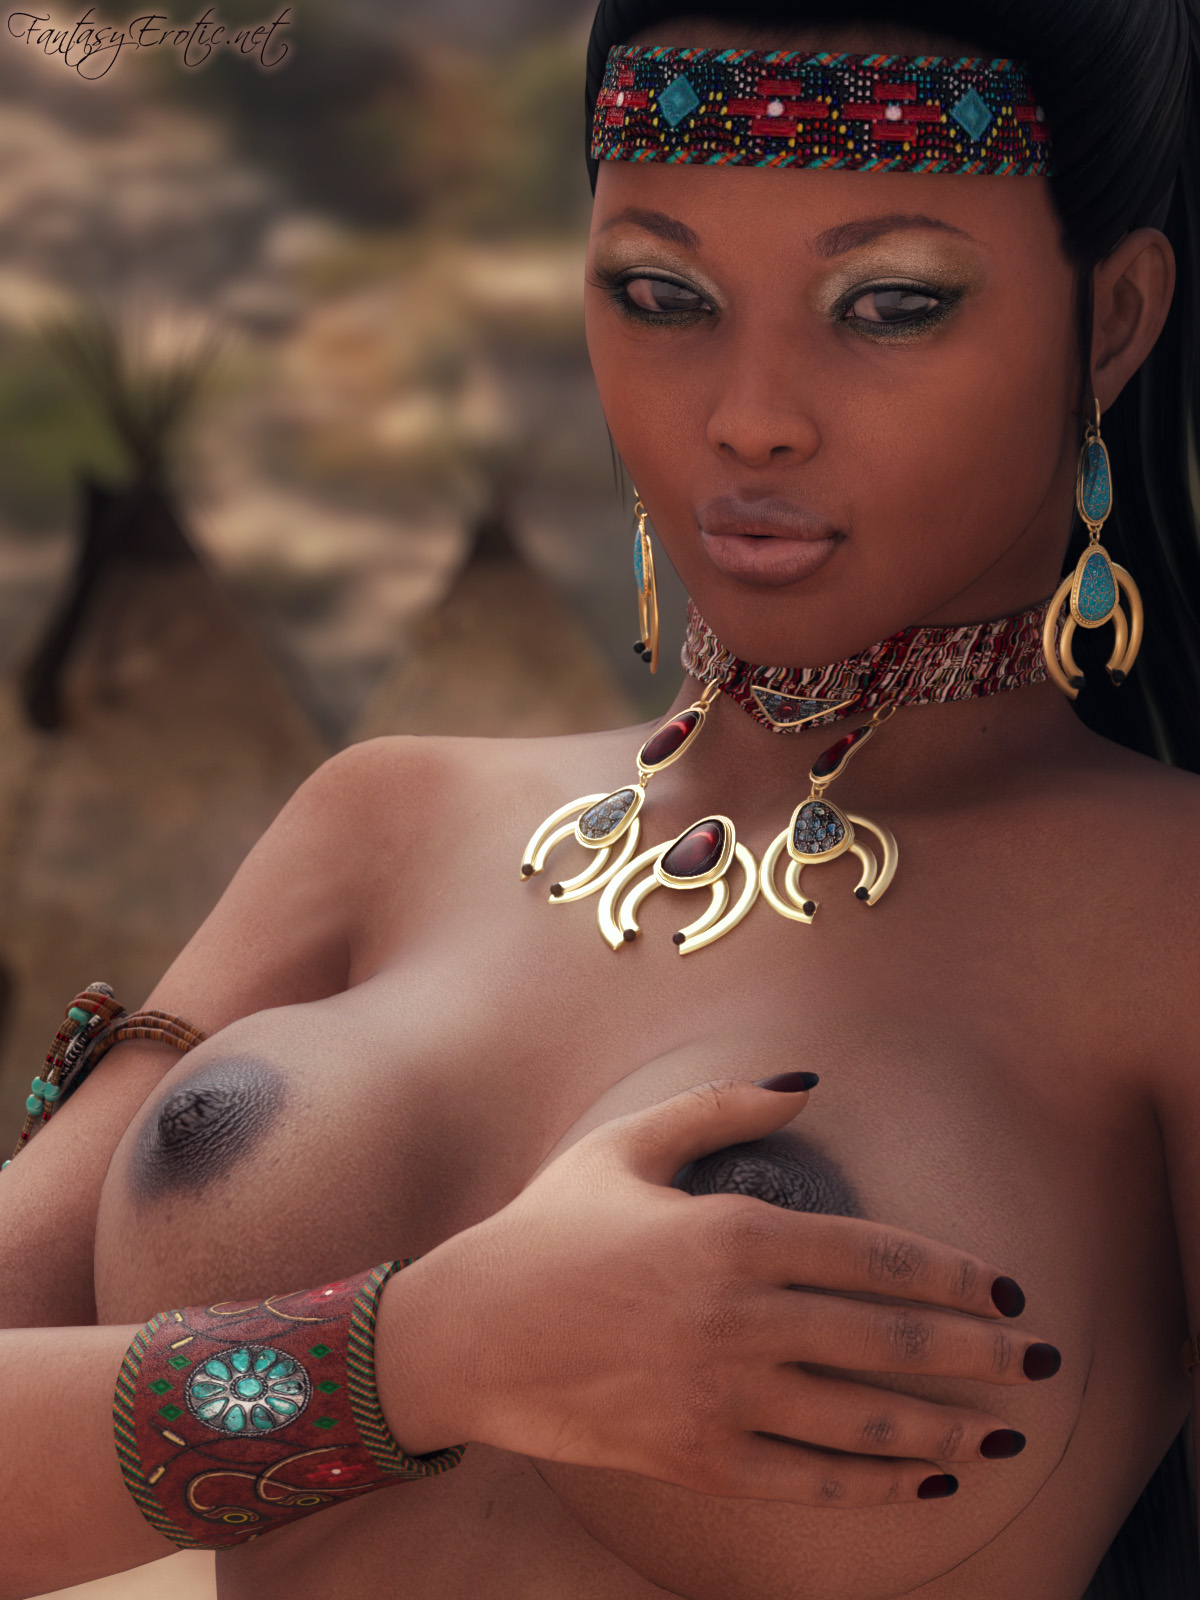 Topless Native American Woman